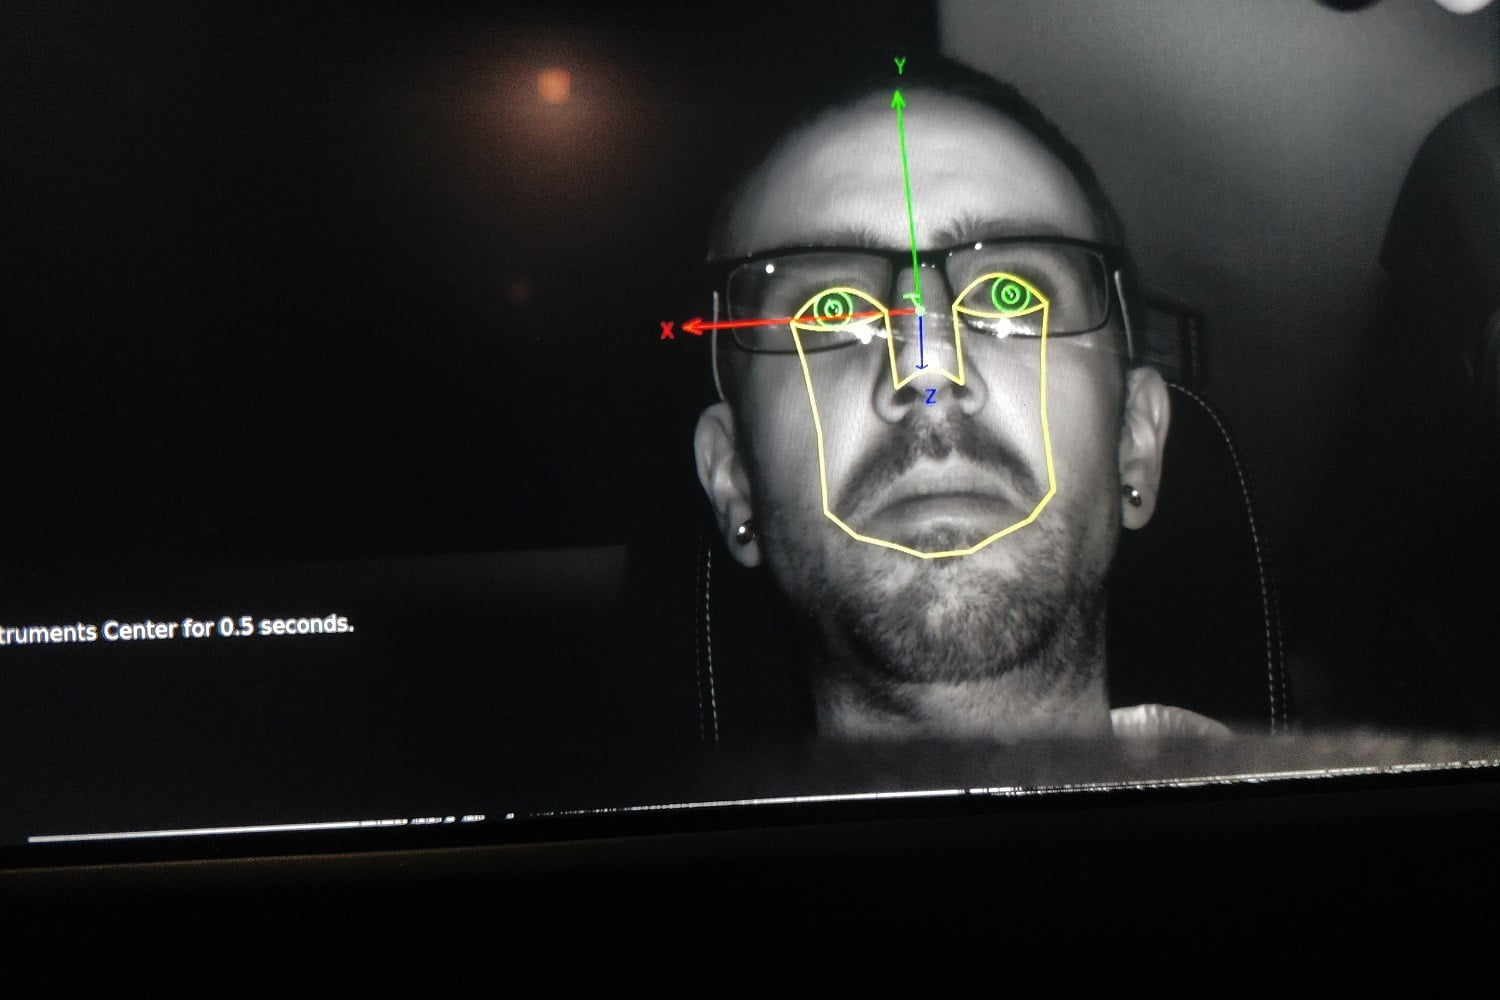 Bosch facial recognition technology